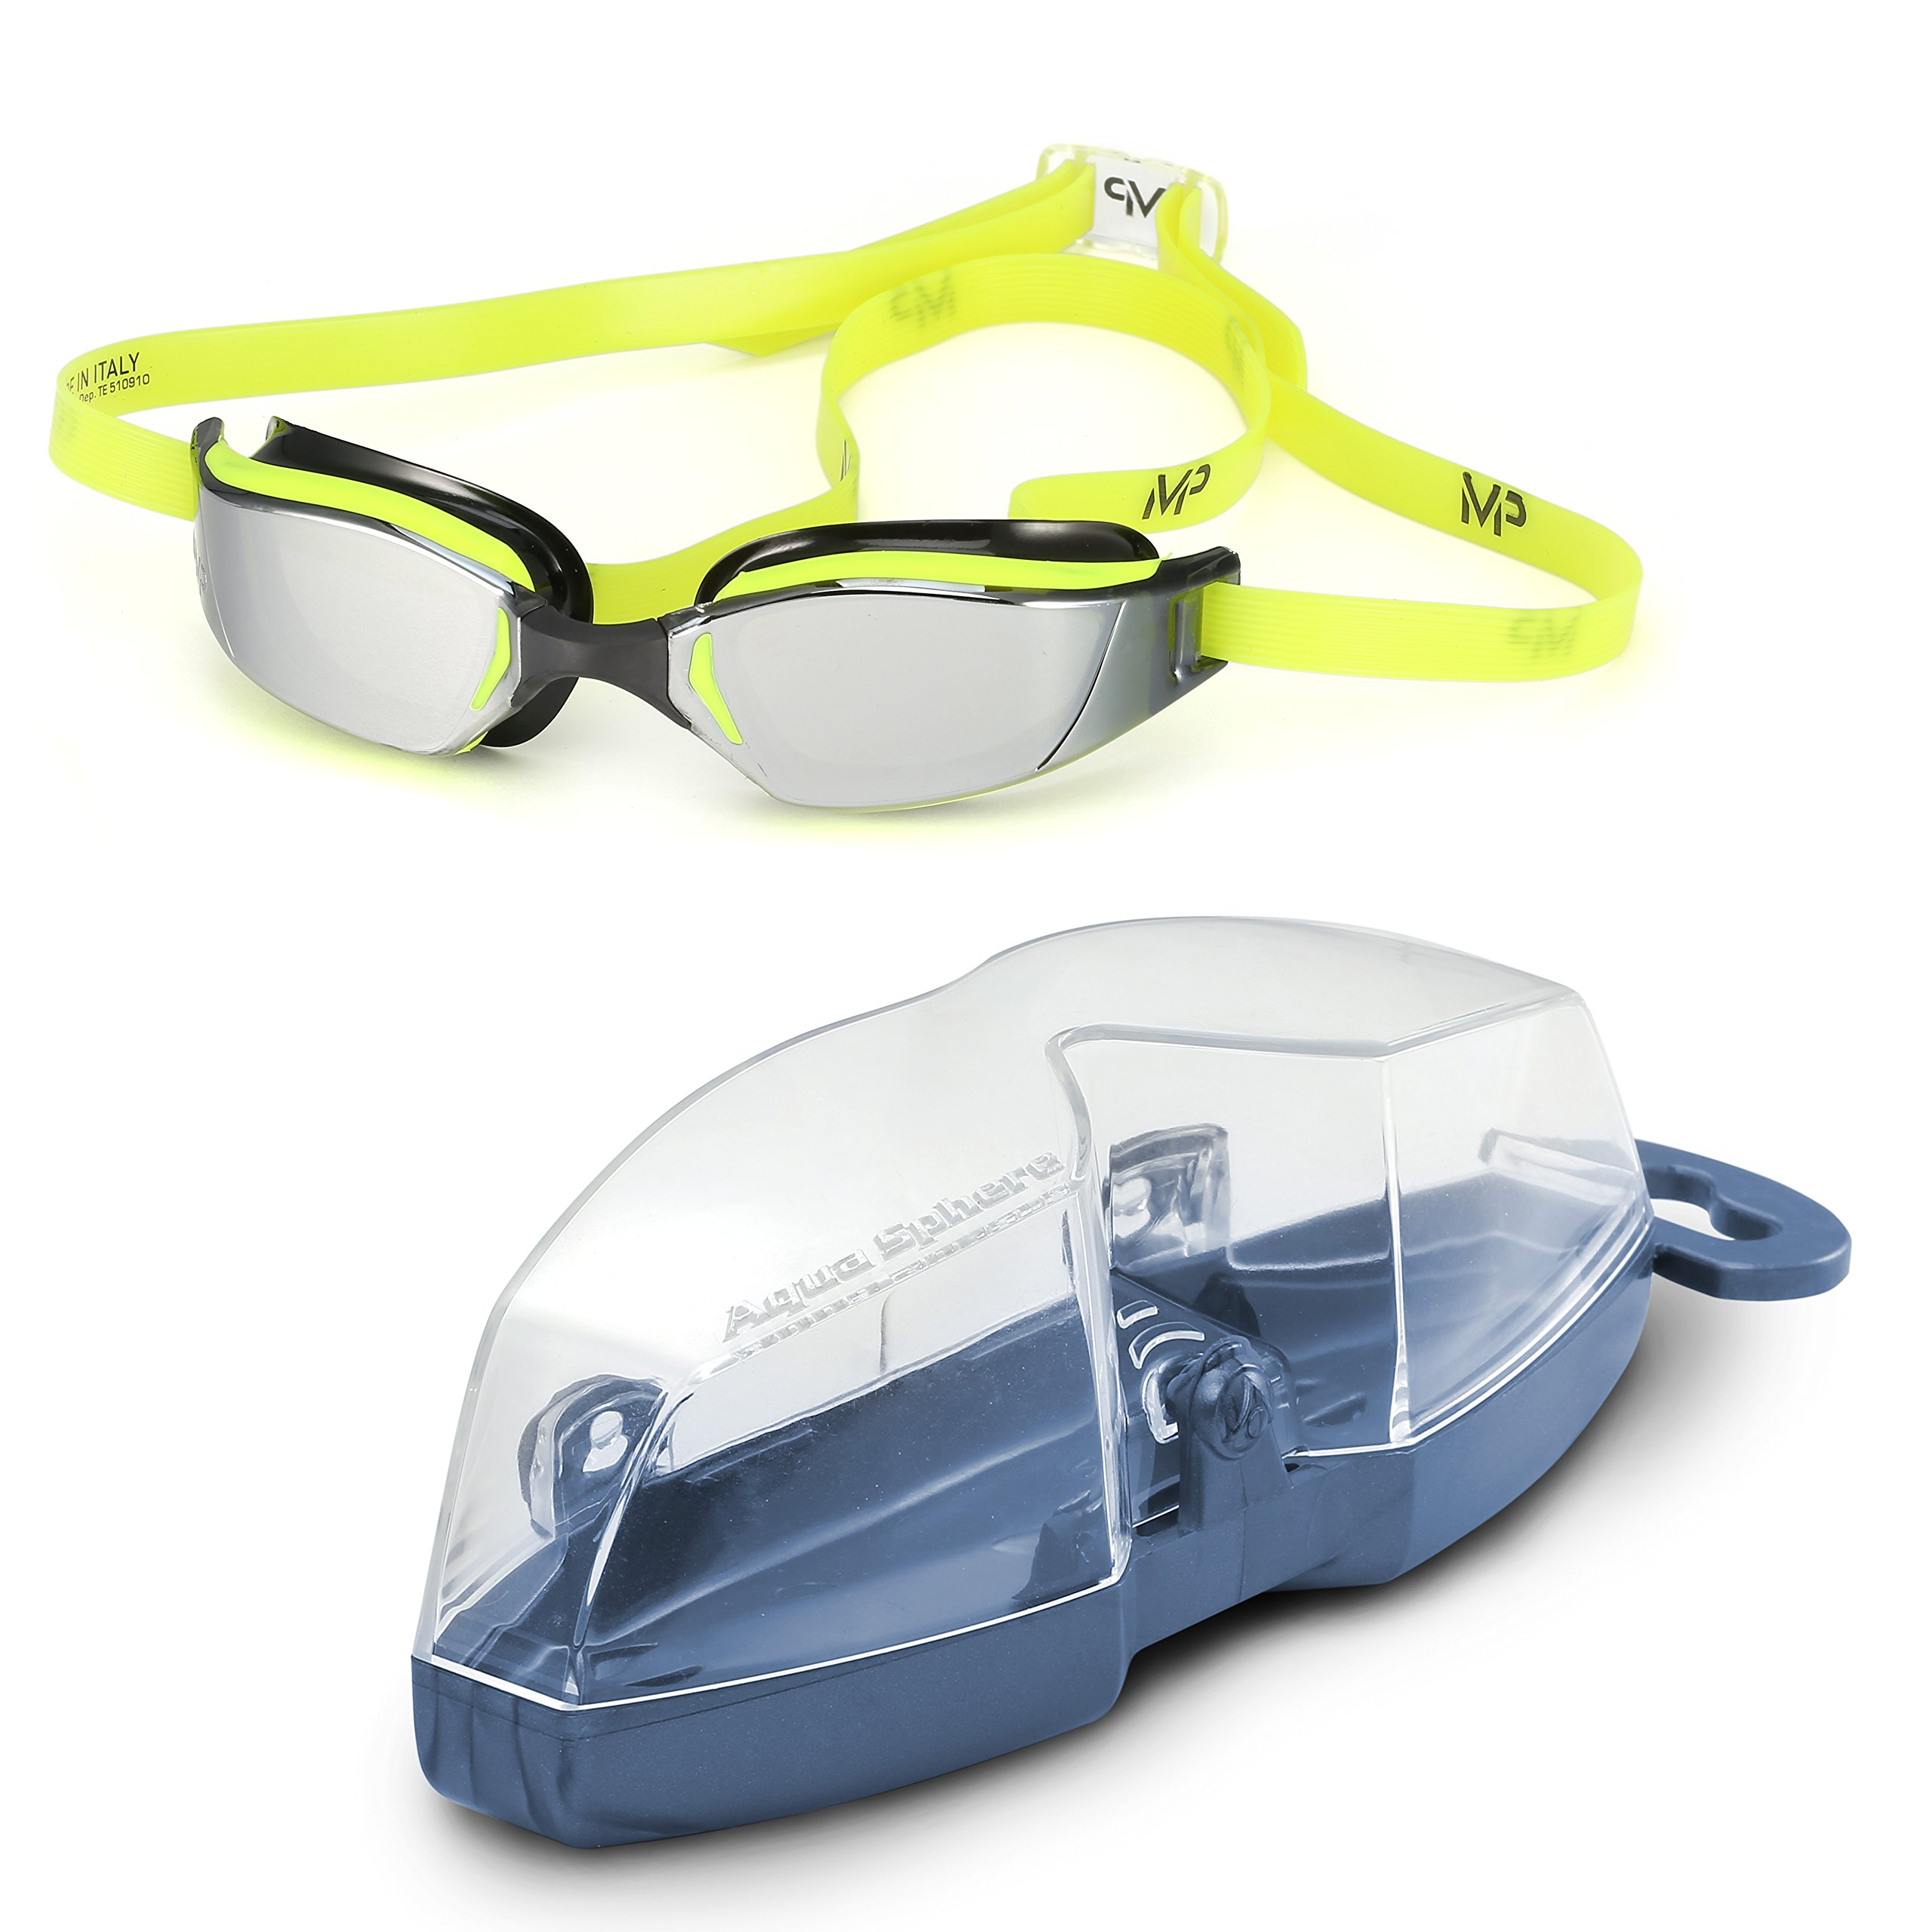 MP Michael Phelps XCEED Swimming Goggles, Mirrored Lens, Yellow/Black Frame by MP Michael Phelps (Image #7)